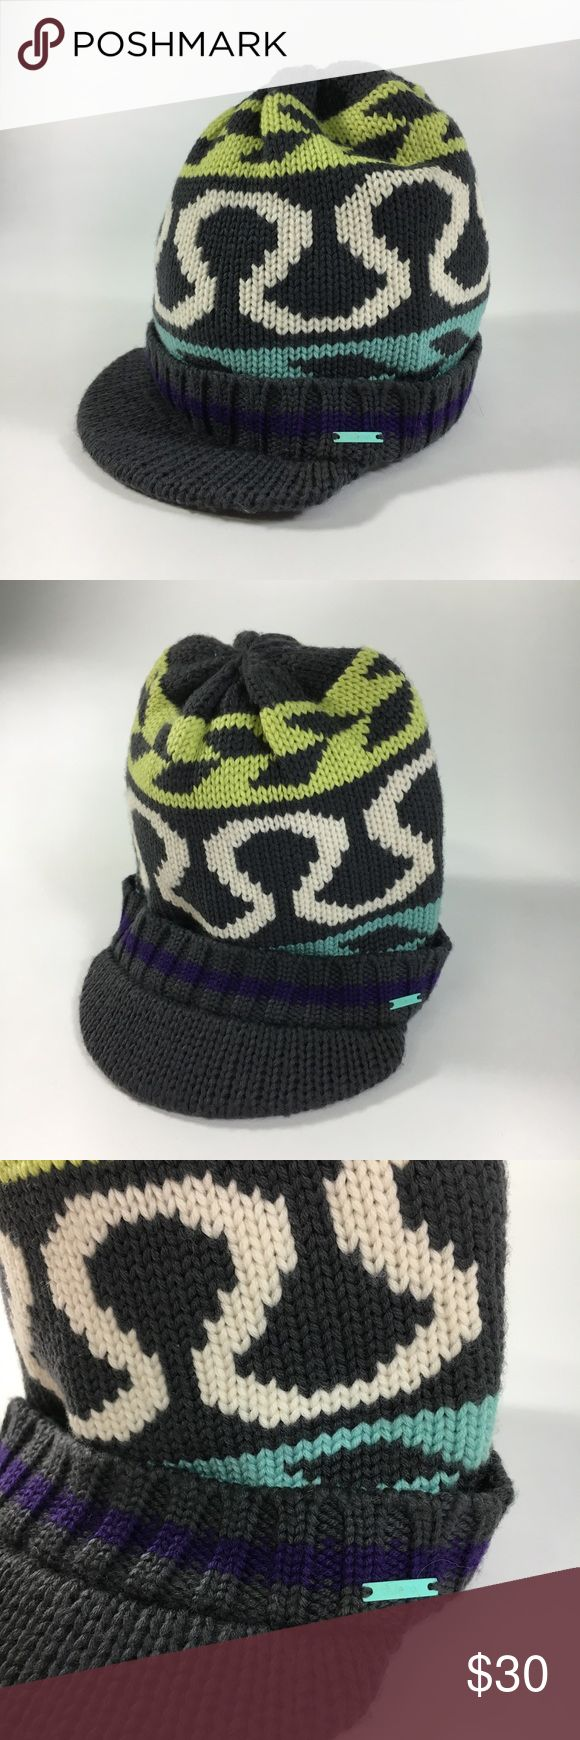 Lululemon winter knit hat This hat is made of a thick knit and keeps your head warm. Has a very cute design on it as well as the lululemon symbol. Has a small flat brim in front, makes for a great snowboarding hat! Main color is grey with lime green, purple, light blue and white. Worn one 1 time and in great condition! lululemon athletica Accessories Hats